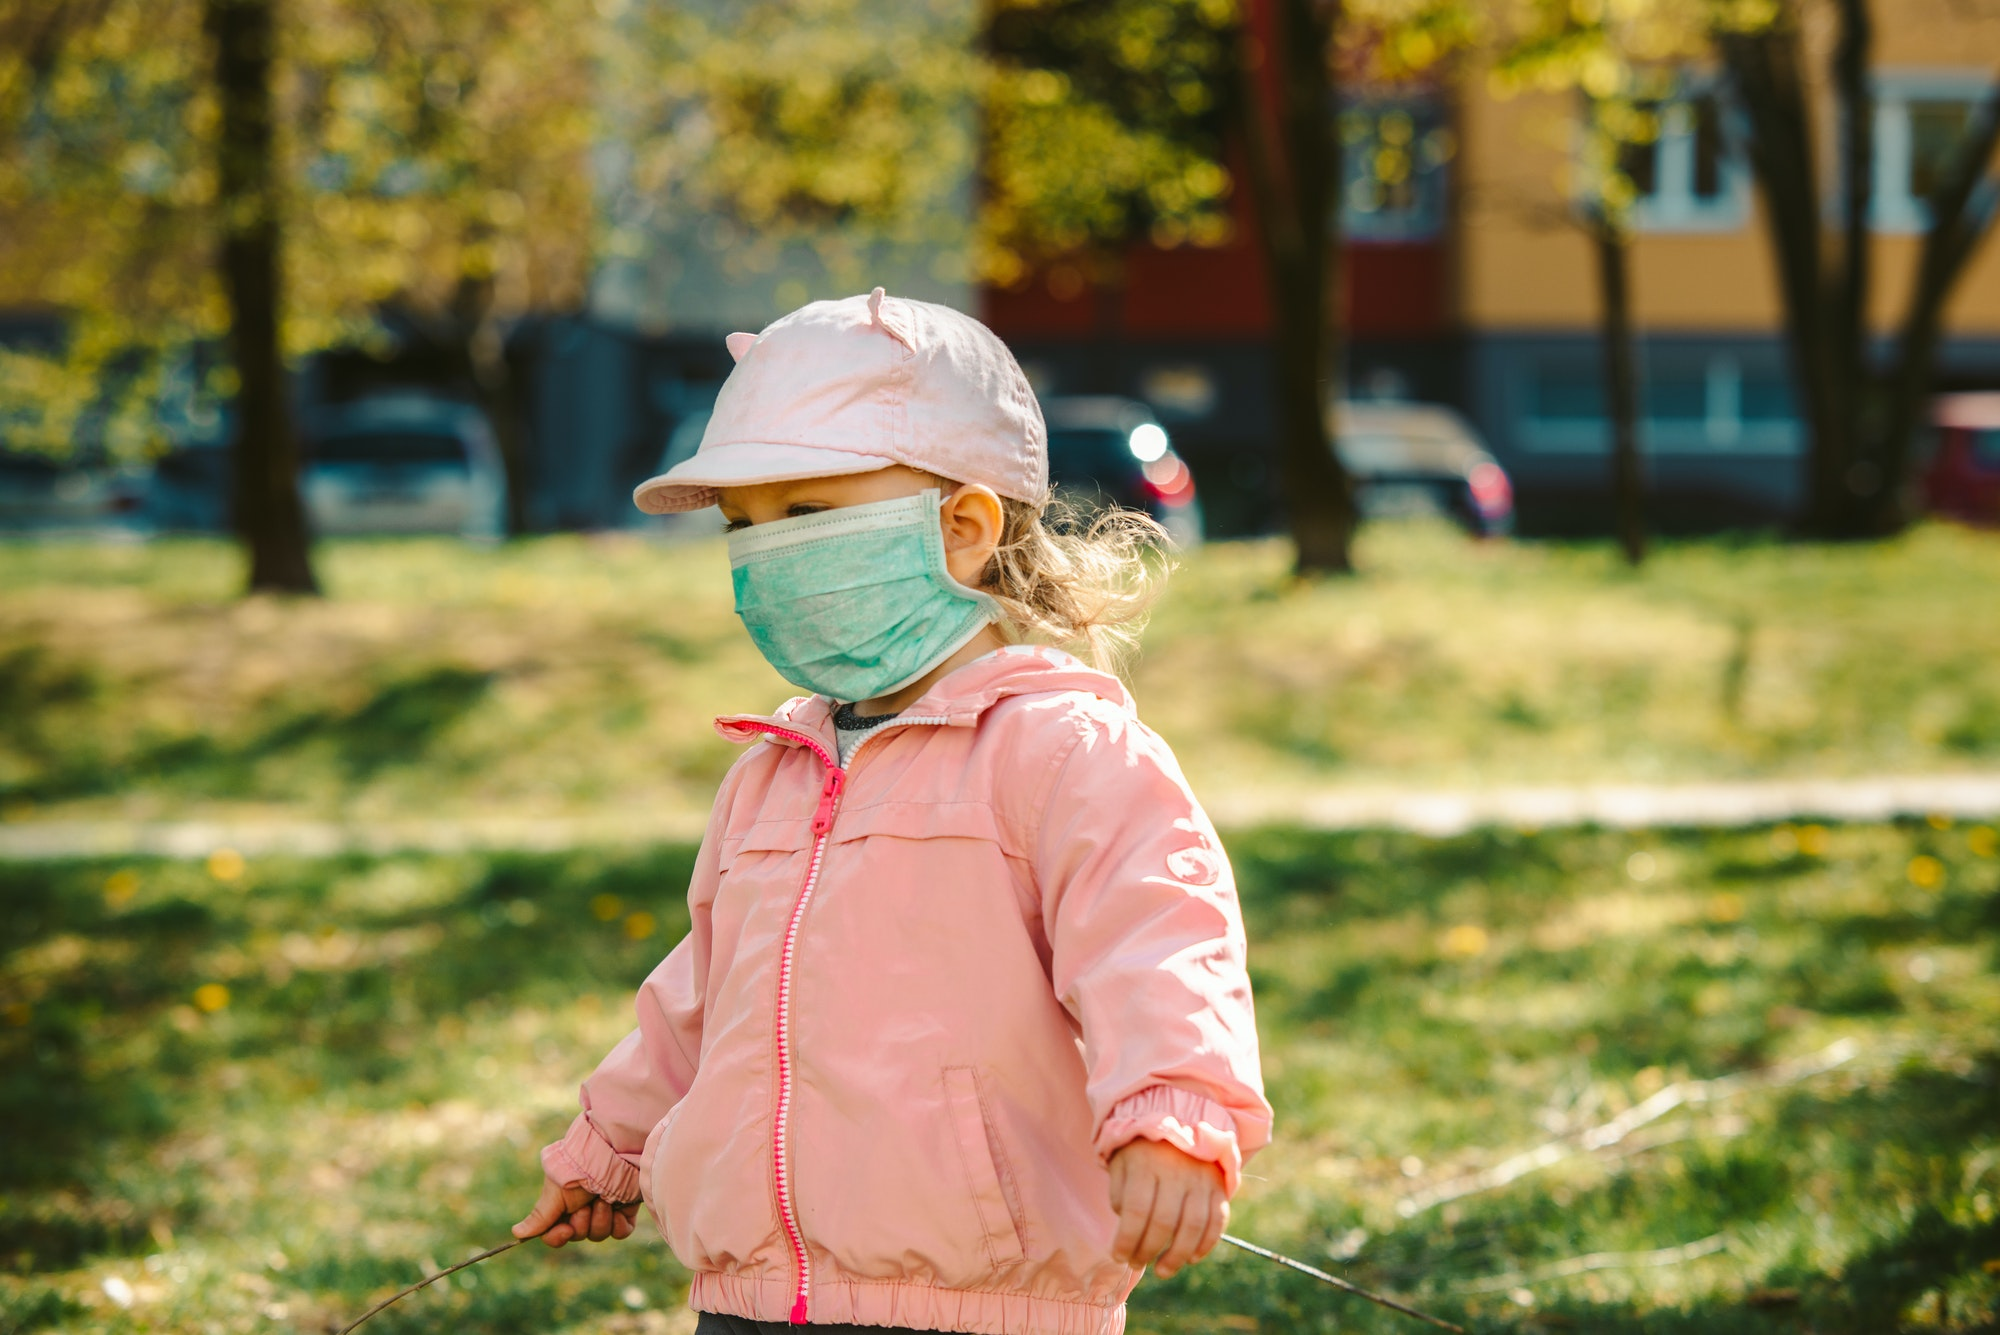 What are The Top 5 Clinical Features of COVID-19 That Affect Kids and How are They Different to Adults?